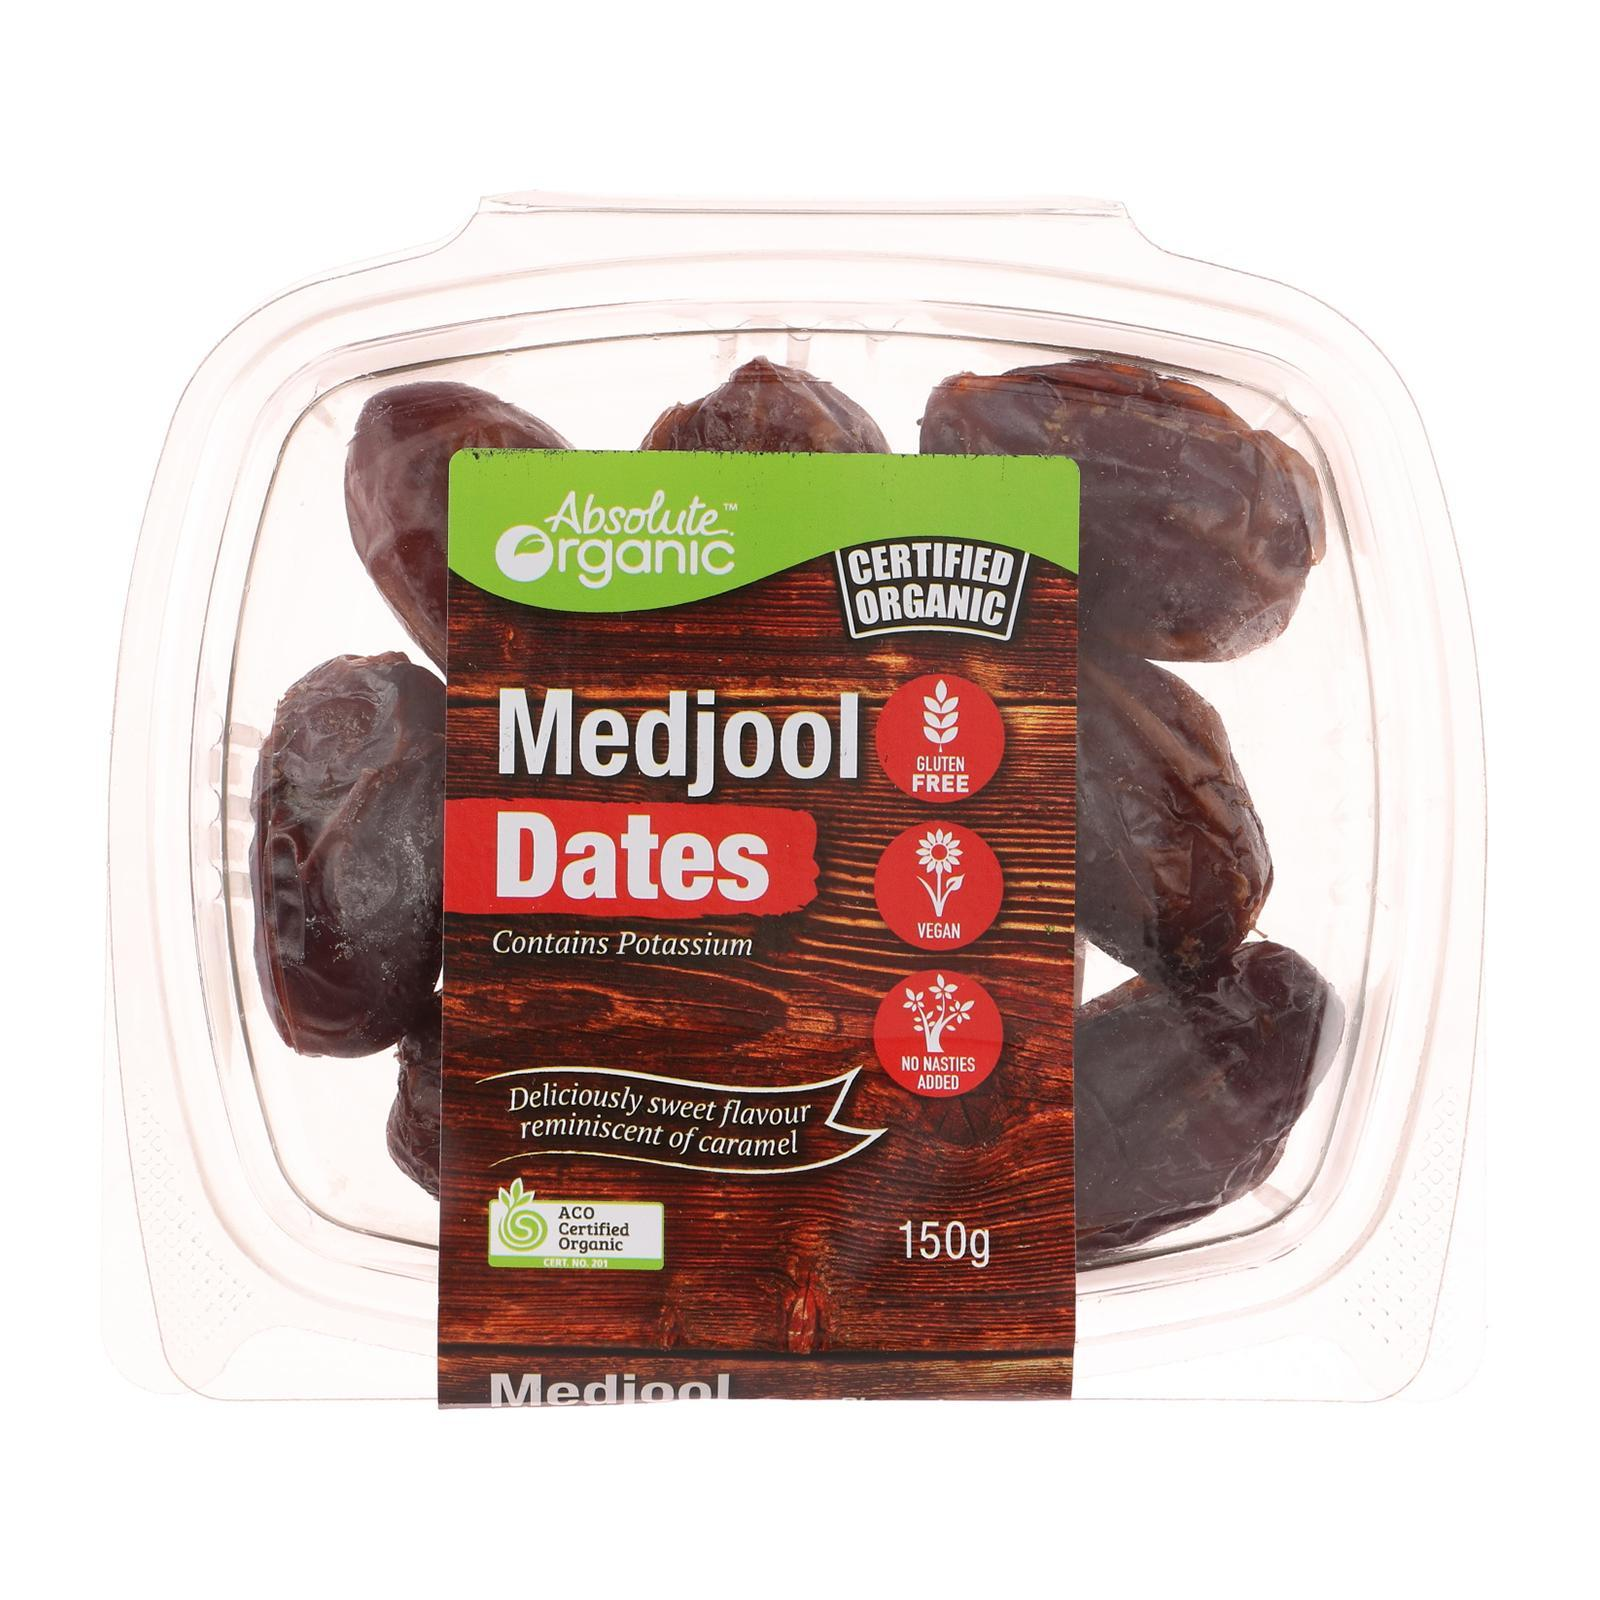 Absolute Organic Medjool Date - By Wholesome Harvest